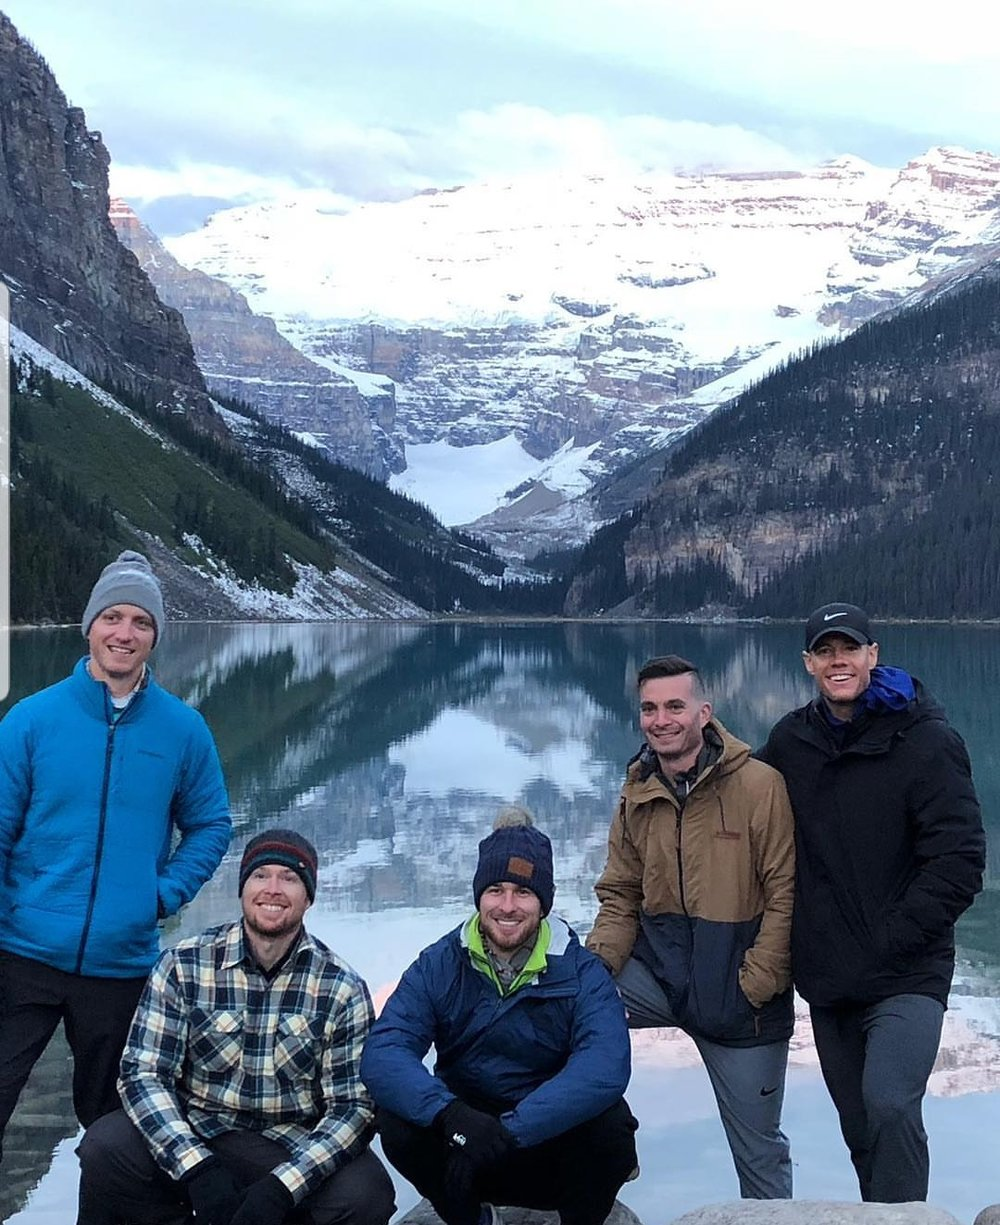 Skyline members (l to r) Trevor Gerland, Brand Andersen, Ryan Bailey, Ryan Kealler, and Daniel Orr at Banff National Park.